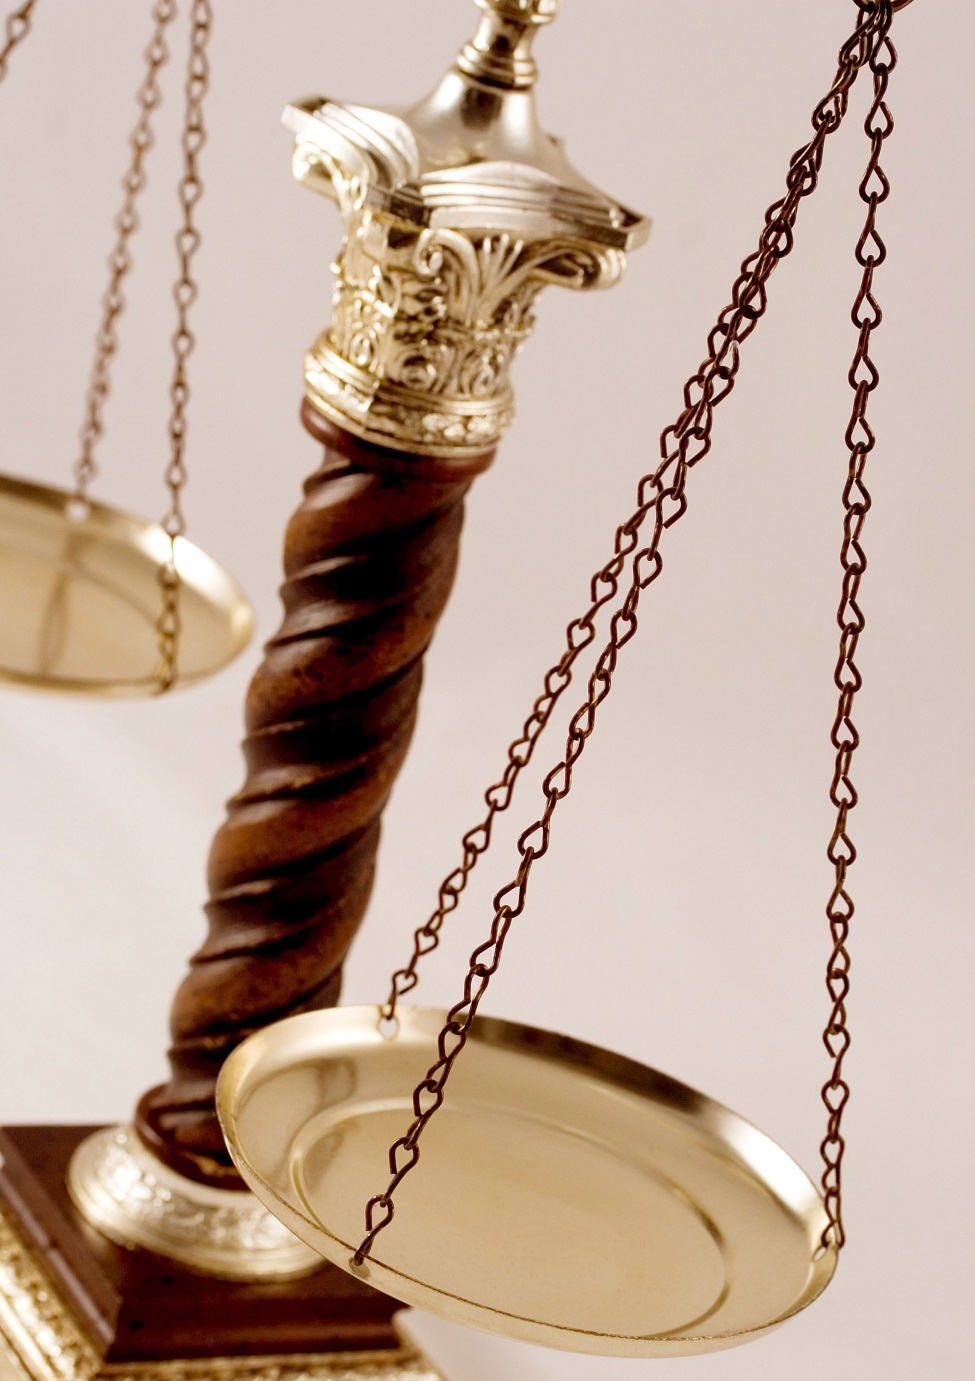 How to weight a judicial case? A key indicator for time measurement in courts